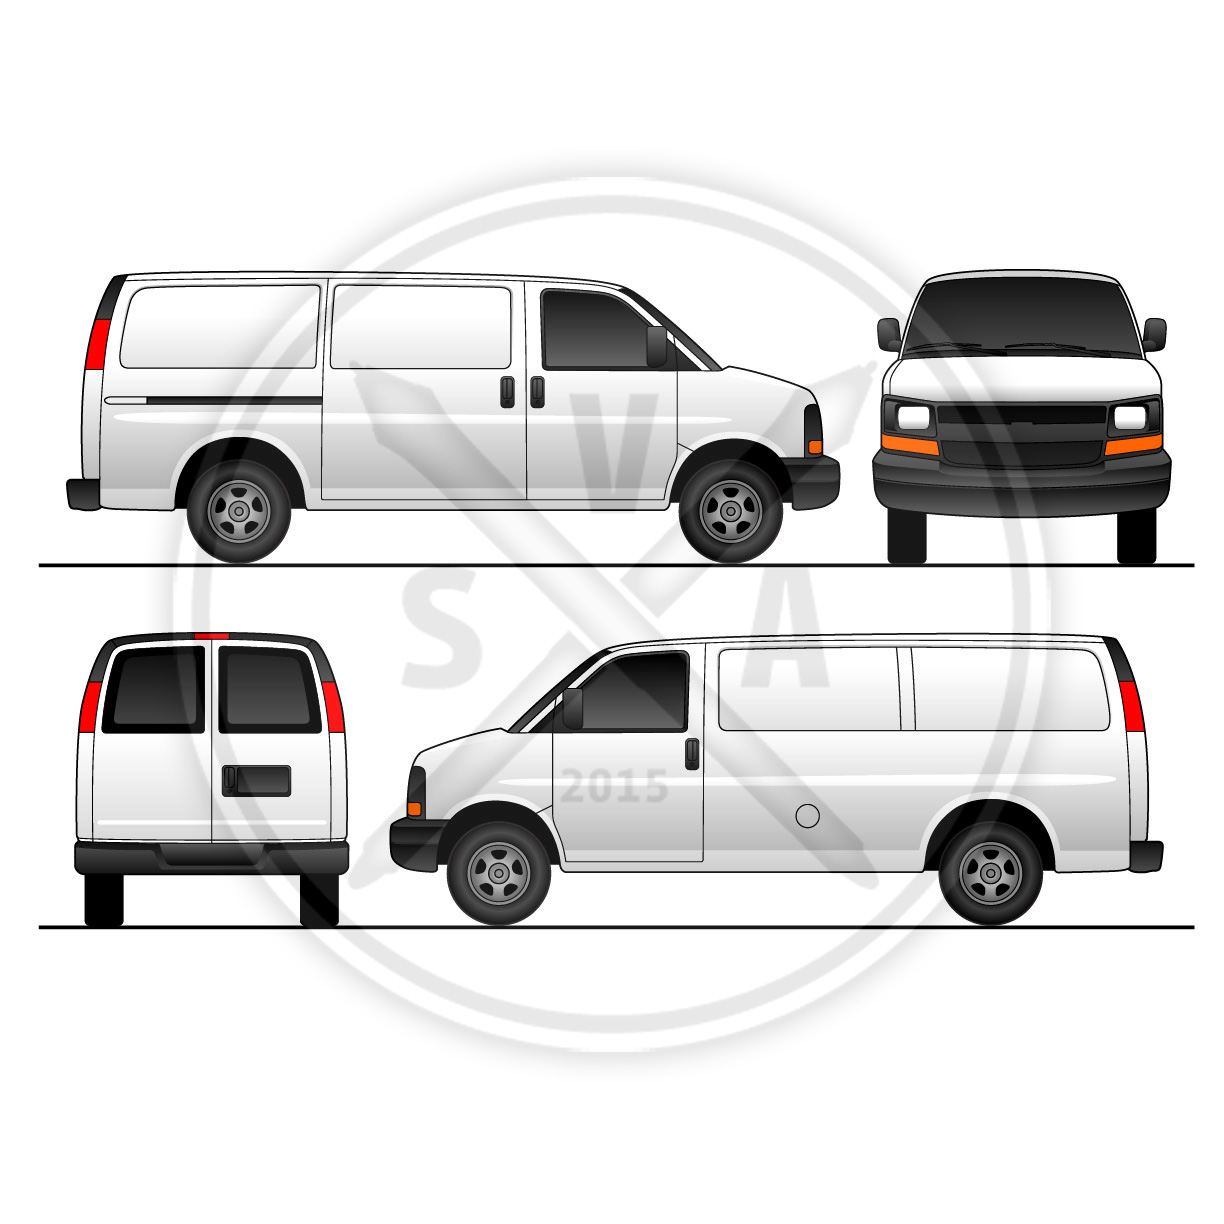 Chev Express Van With Sliding Doors Stock Vector Art